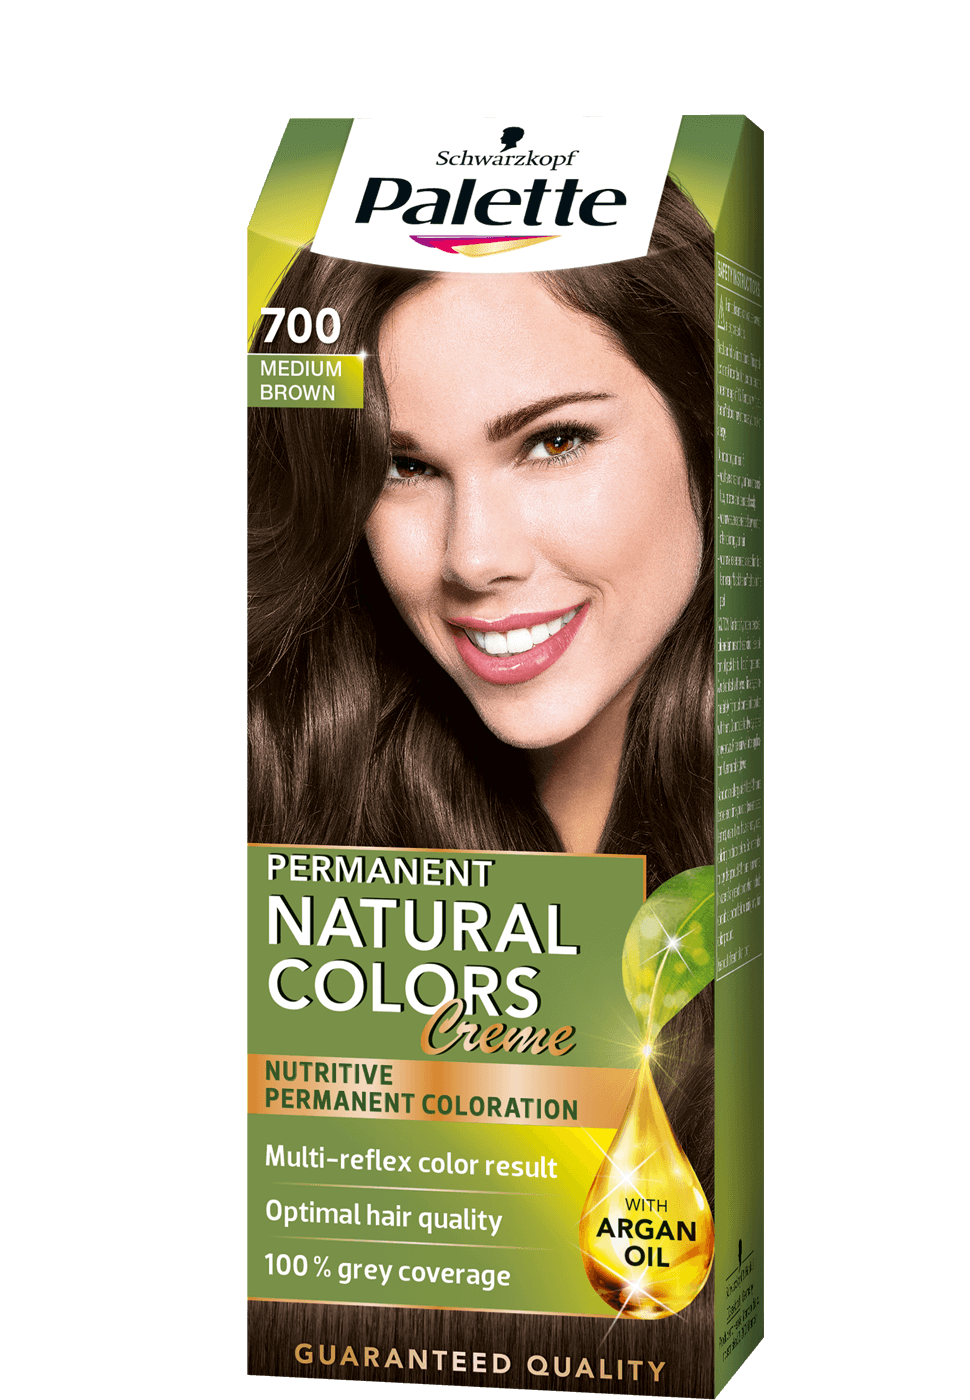 Permanent Natural Colors 700 - Középbarna